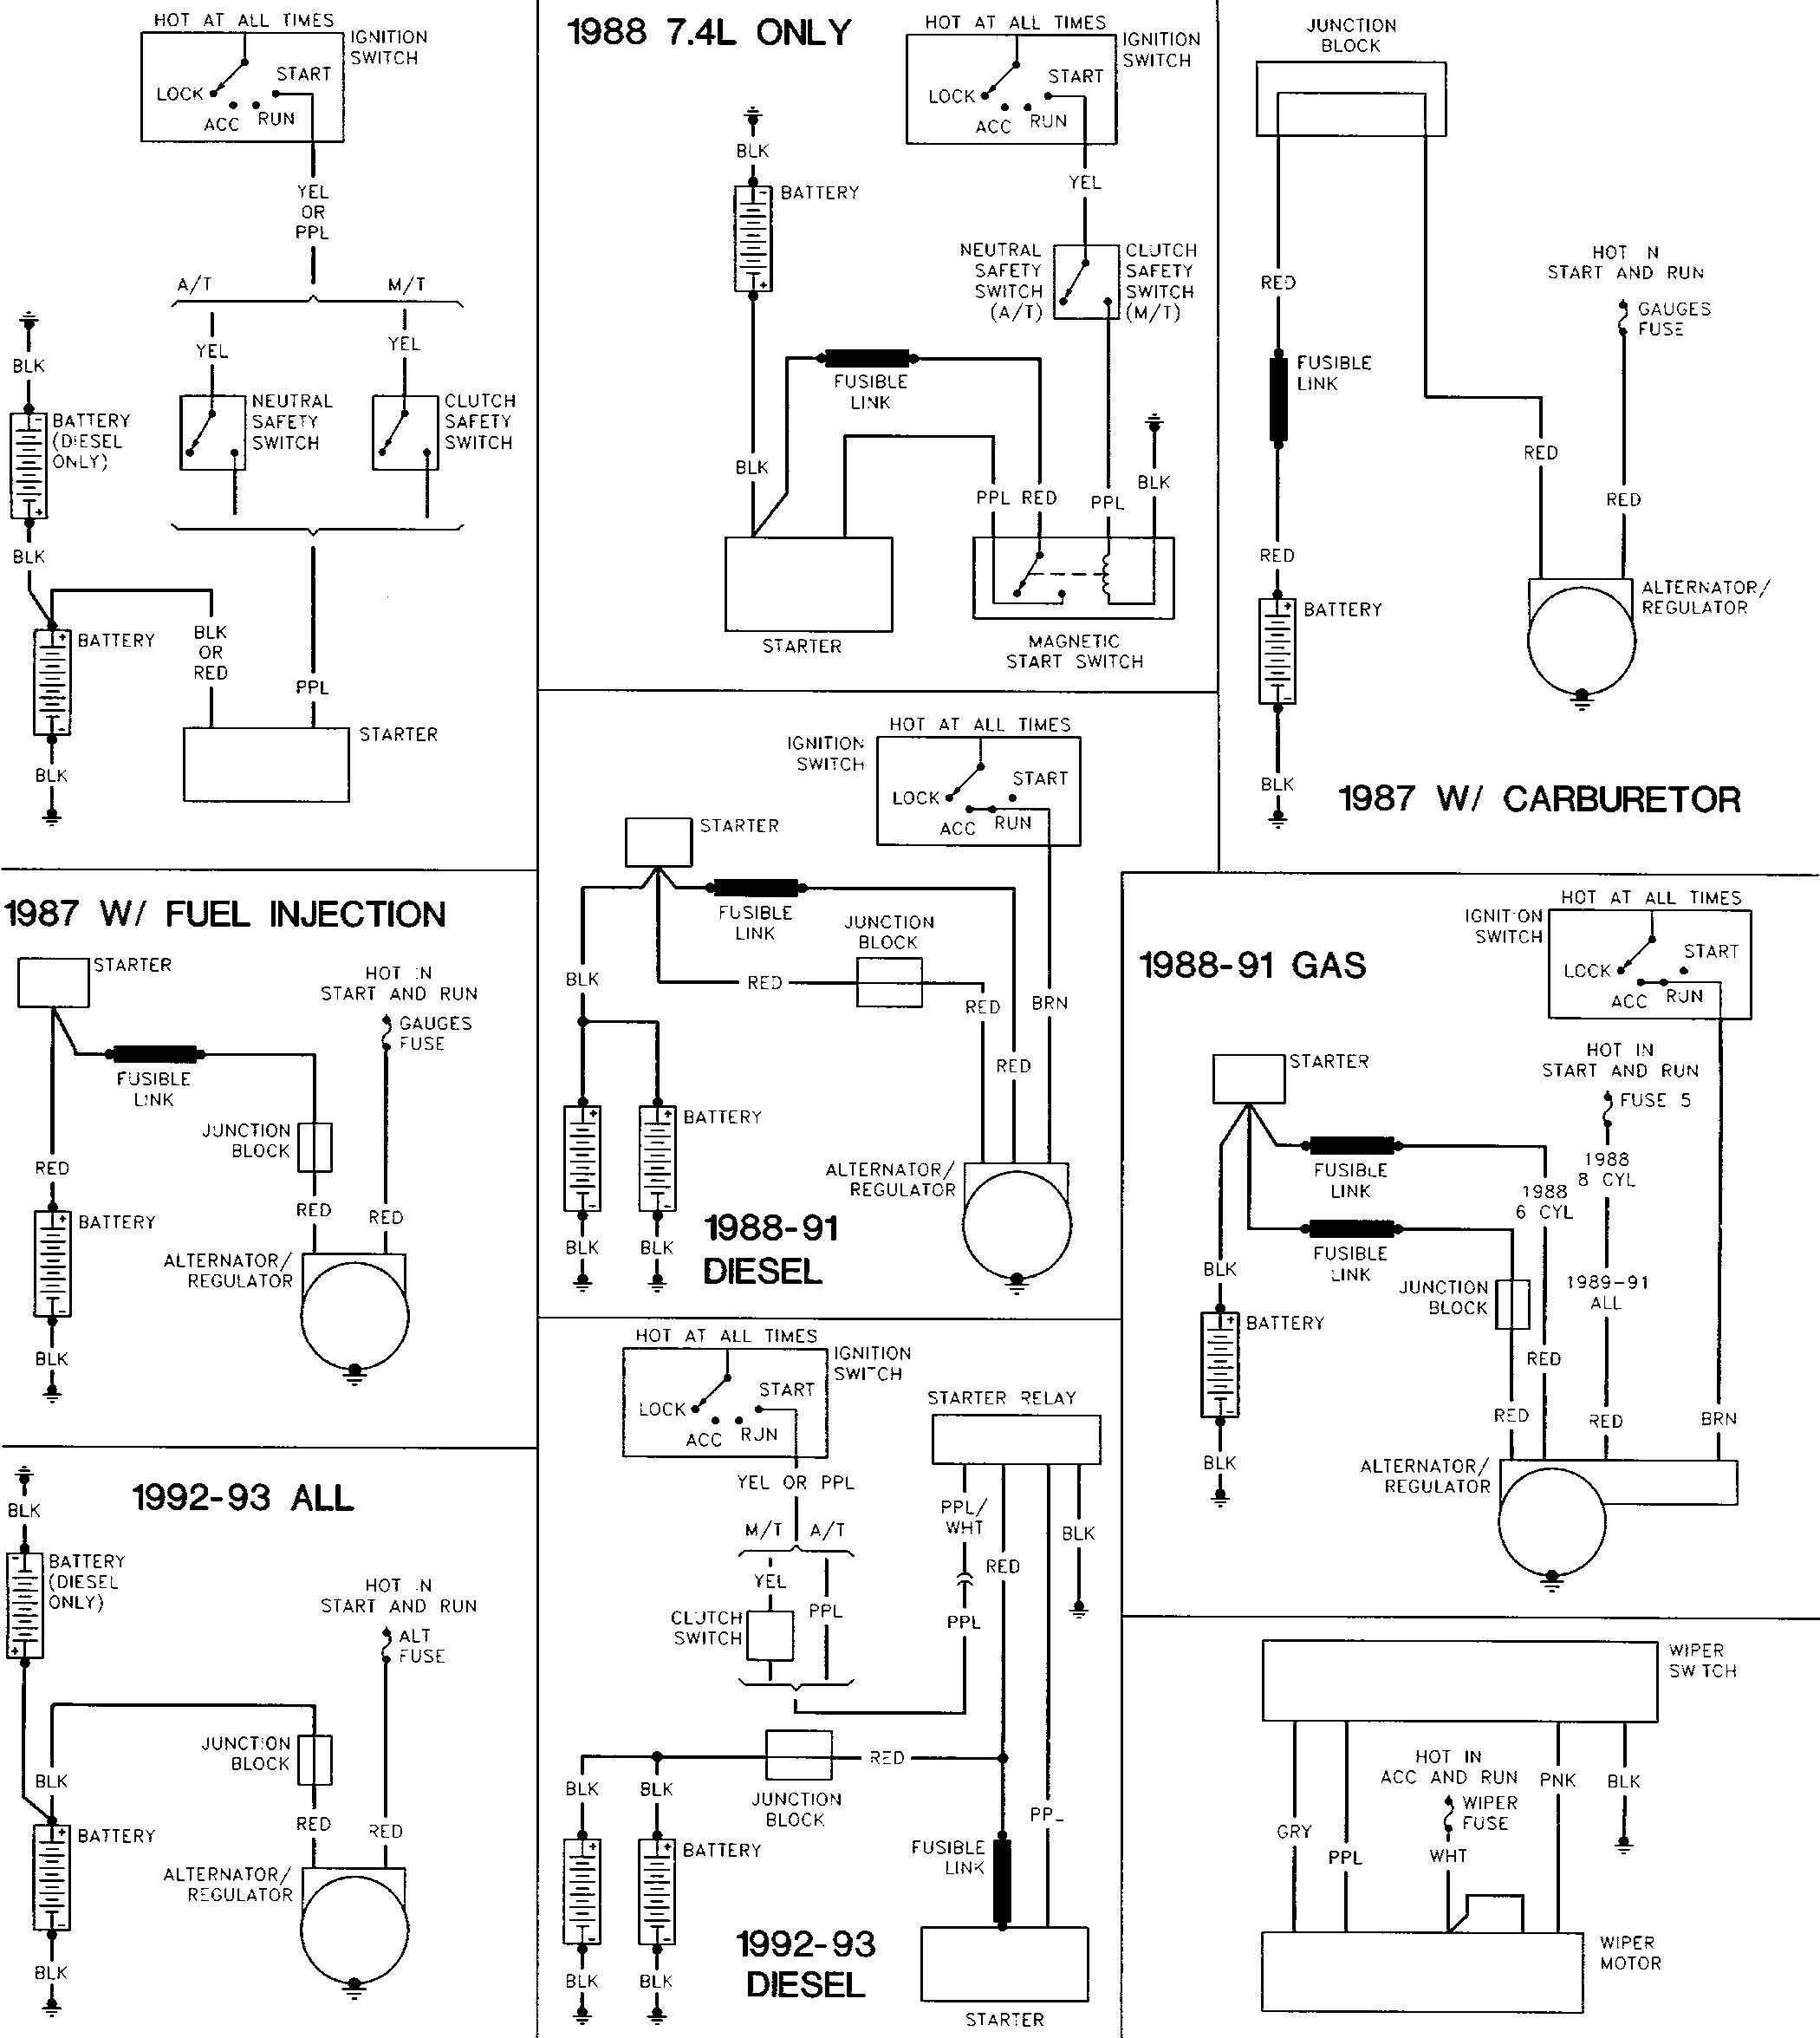 New Wiring Diagram 50 Amp Rv Service #diagramsample #